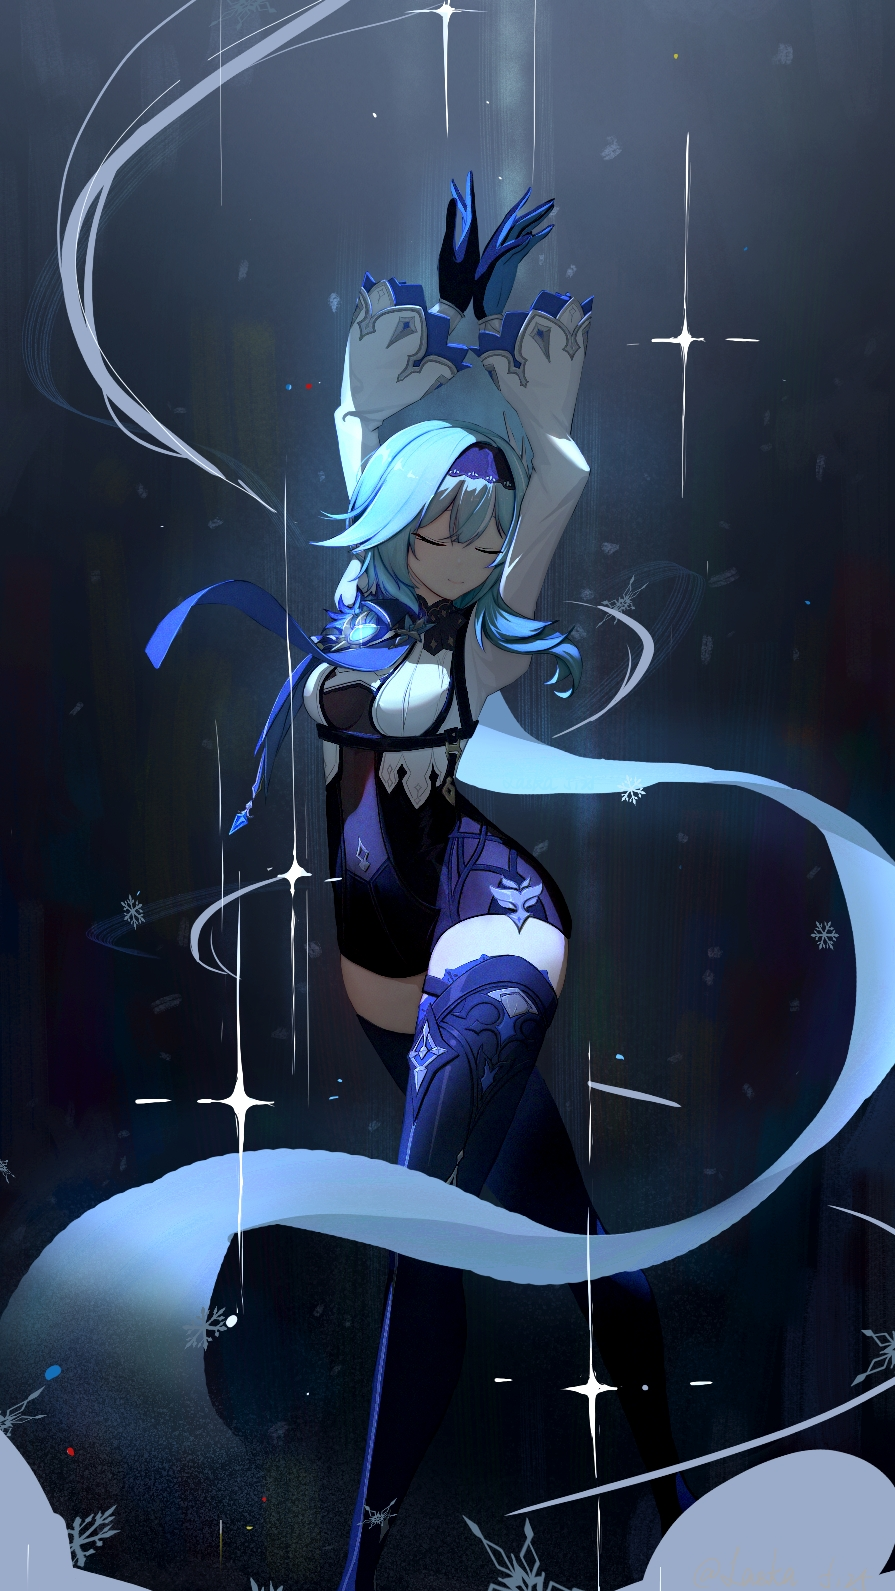 1girl arms_up bangs black_footwear black_gloves black_hairband blue_gloves blue_hair blue_legwear blue_neckwear bodystocking boots breasts cape closed_eyes closed_mouth eula_lawrence genshin_impact gloves hair_ornament hairband highres laska_(572124034) long_sleeves medium_breasts medium_hair multicolored multicolored_clothes multicolored_gloves necktie snowflakes solo sparkle_background standing thigh-highs thigh_boots thigh_strap thighs vision_(genshin_impact)